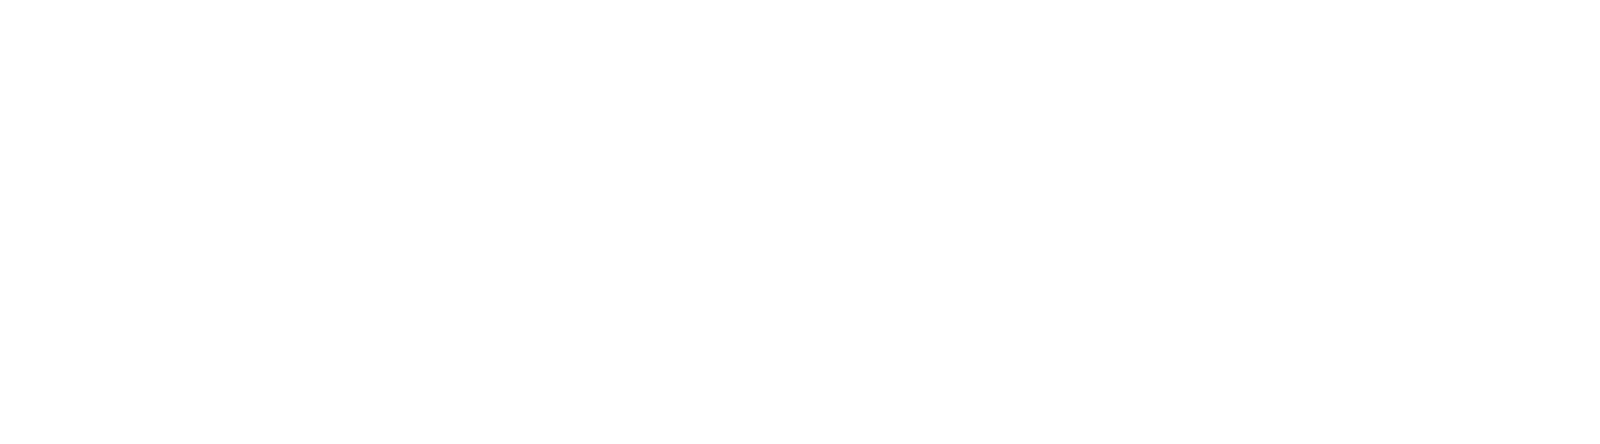 Jarvis Vision Care Center Eye Doctors in Murray, KY